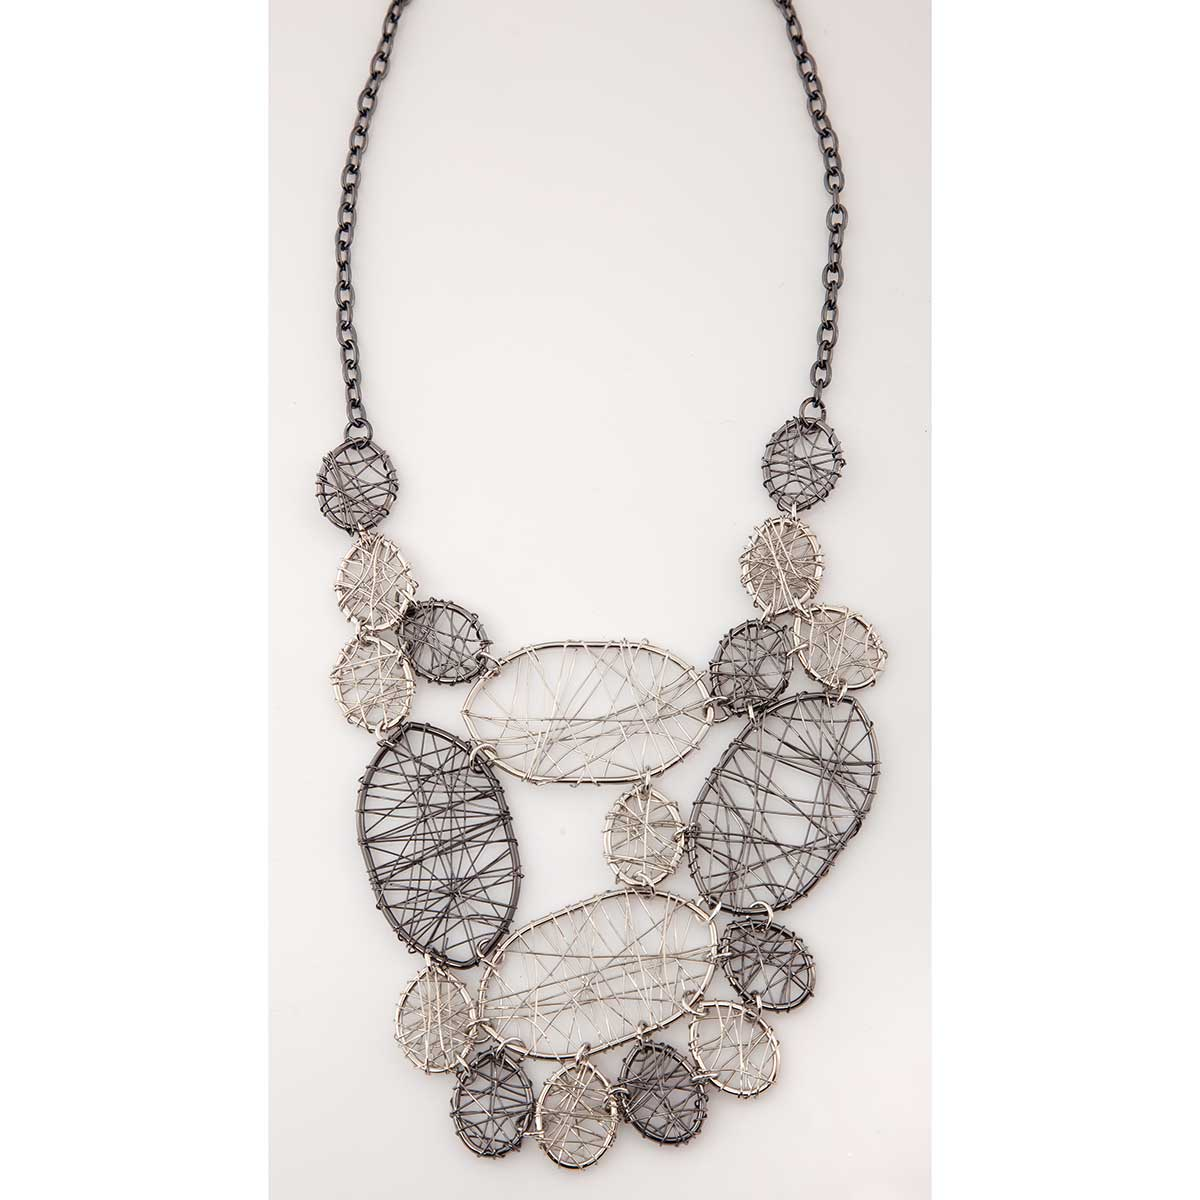 Pewter and Silver Oval Shapes Bib Necklace